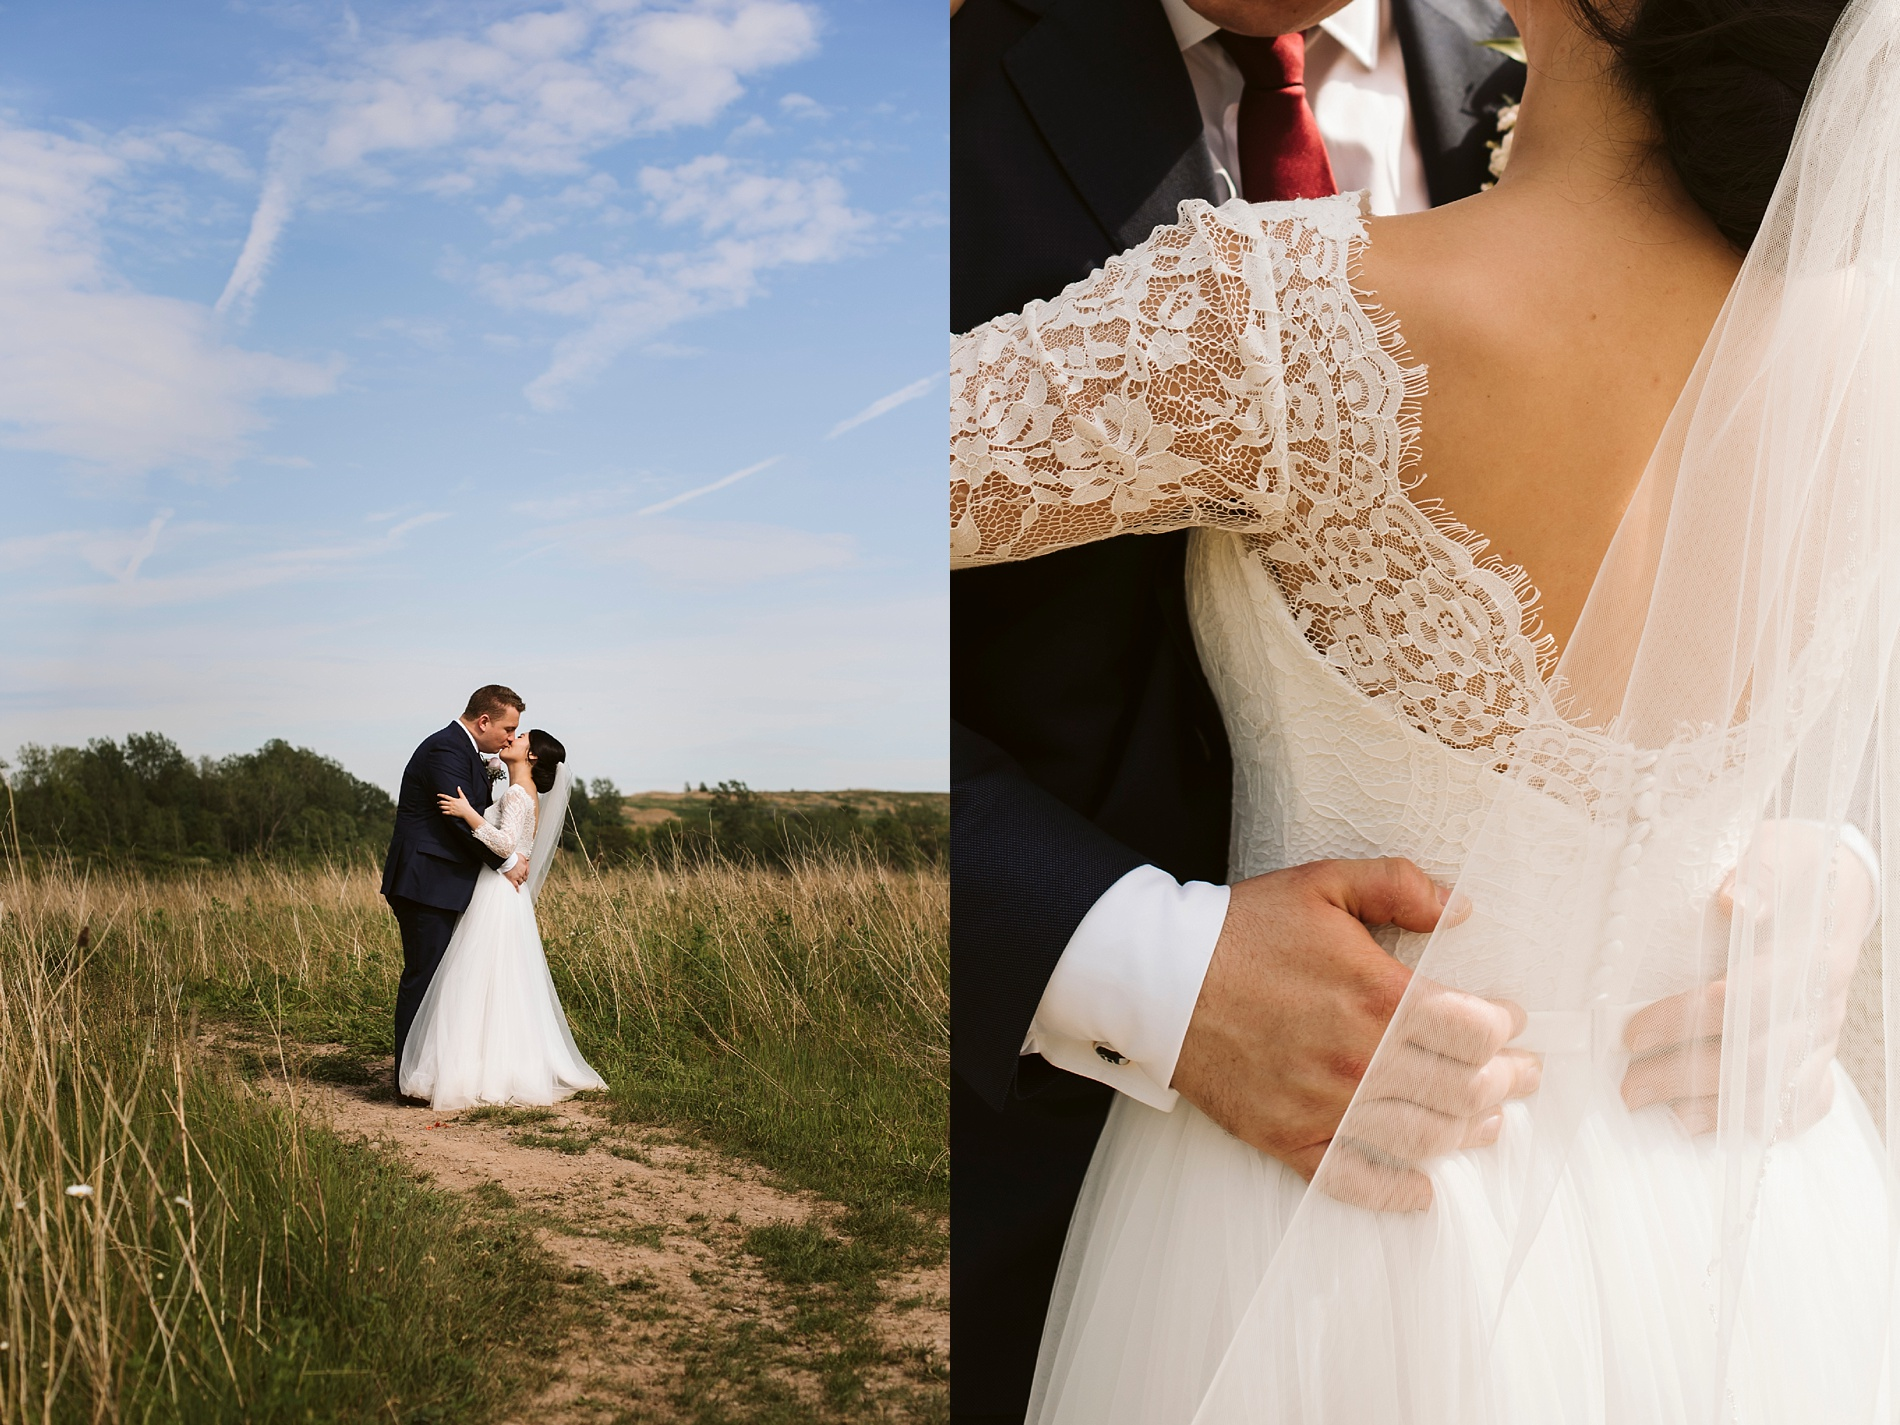 Best_Toronto_Wedding_Photographer_Niagara_Chateaux_des_Charmes_0057.jpg